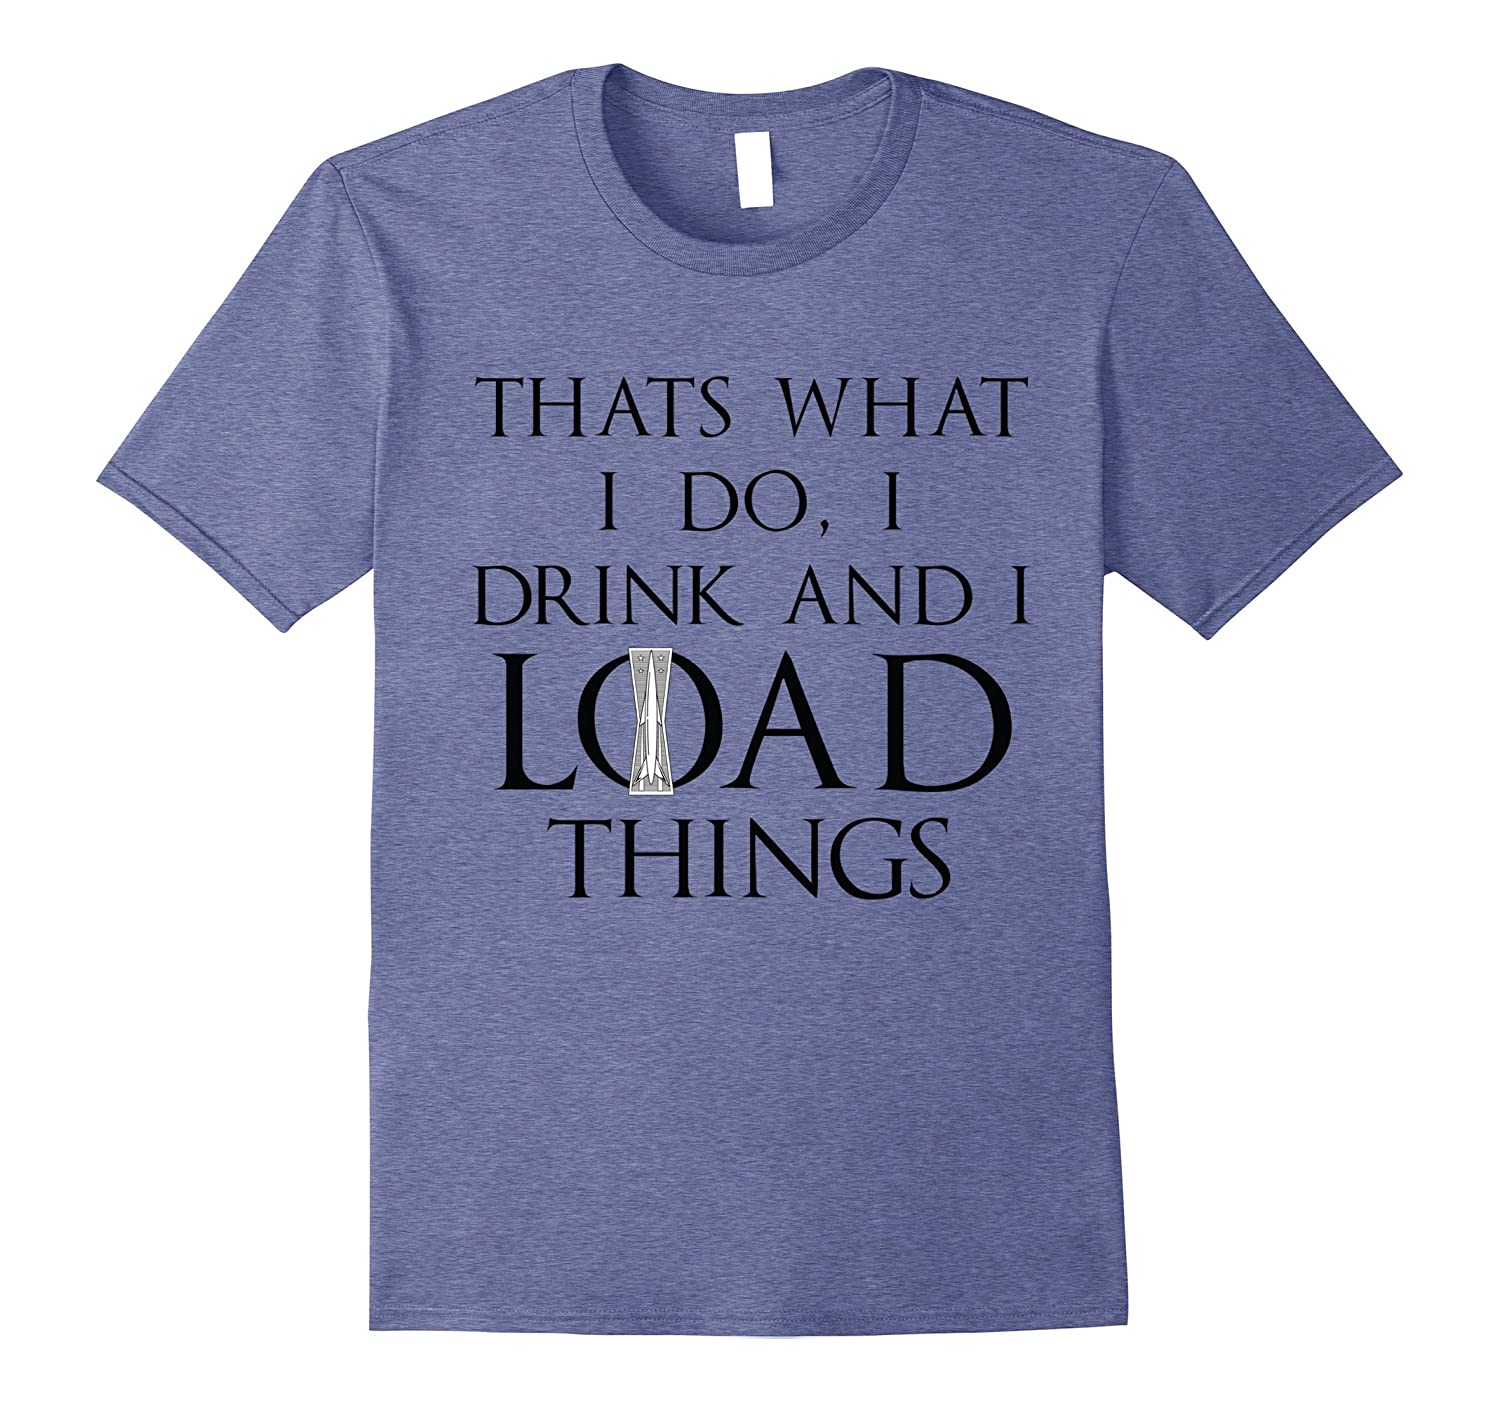 Thats what I do I drink and I LOAD things Shirt-PL